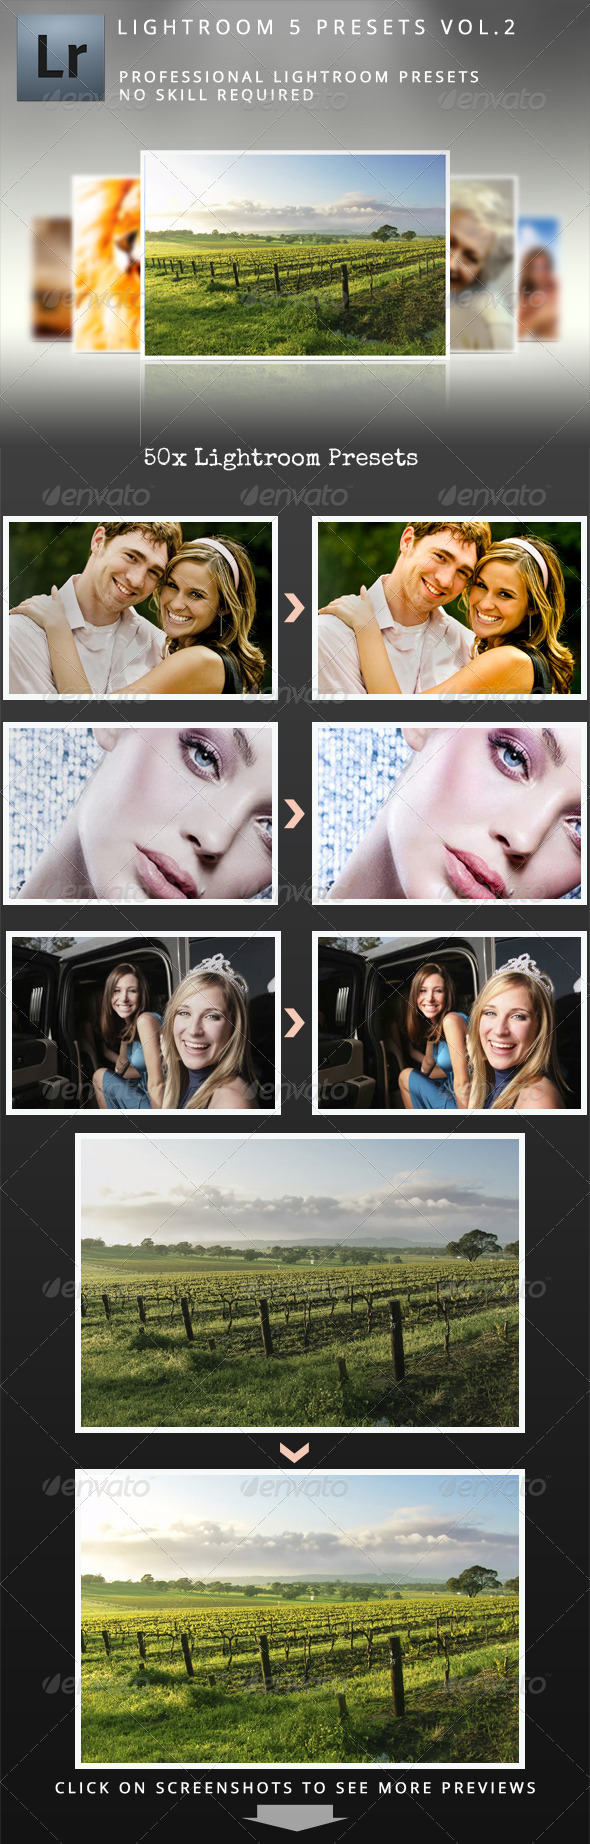 Premium Lightroom 5 Presets Vol.2 - Lightroom Presets Add-ons